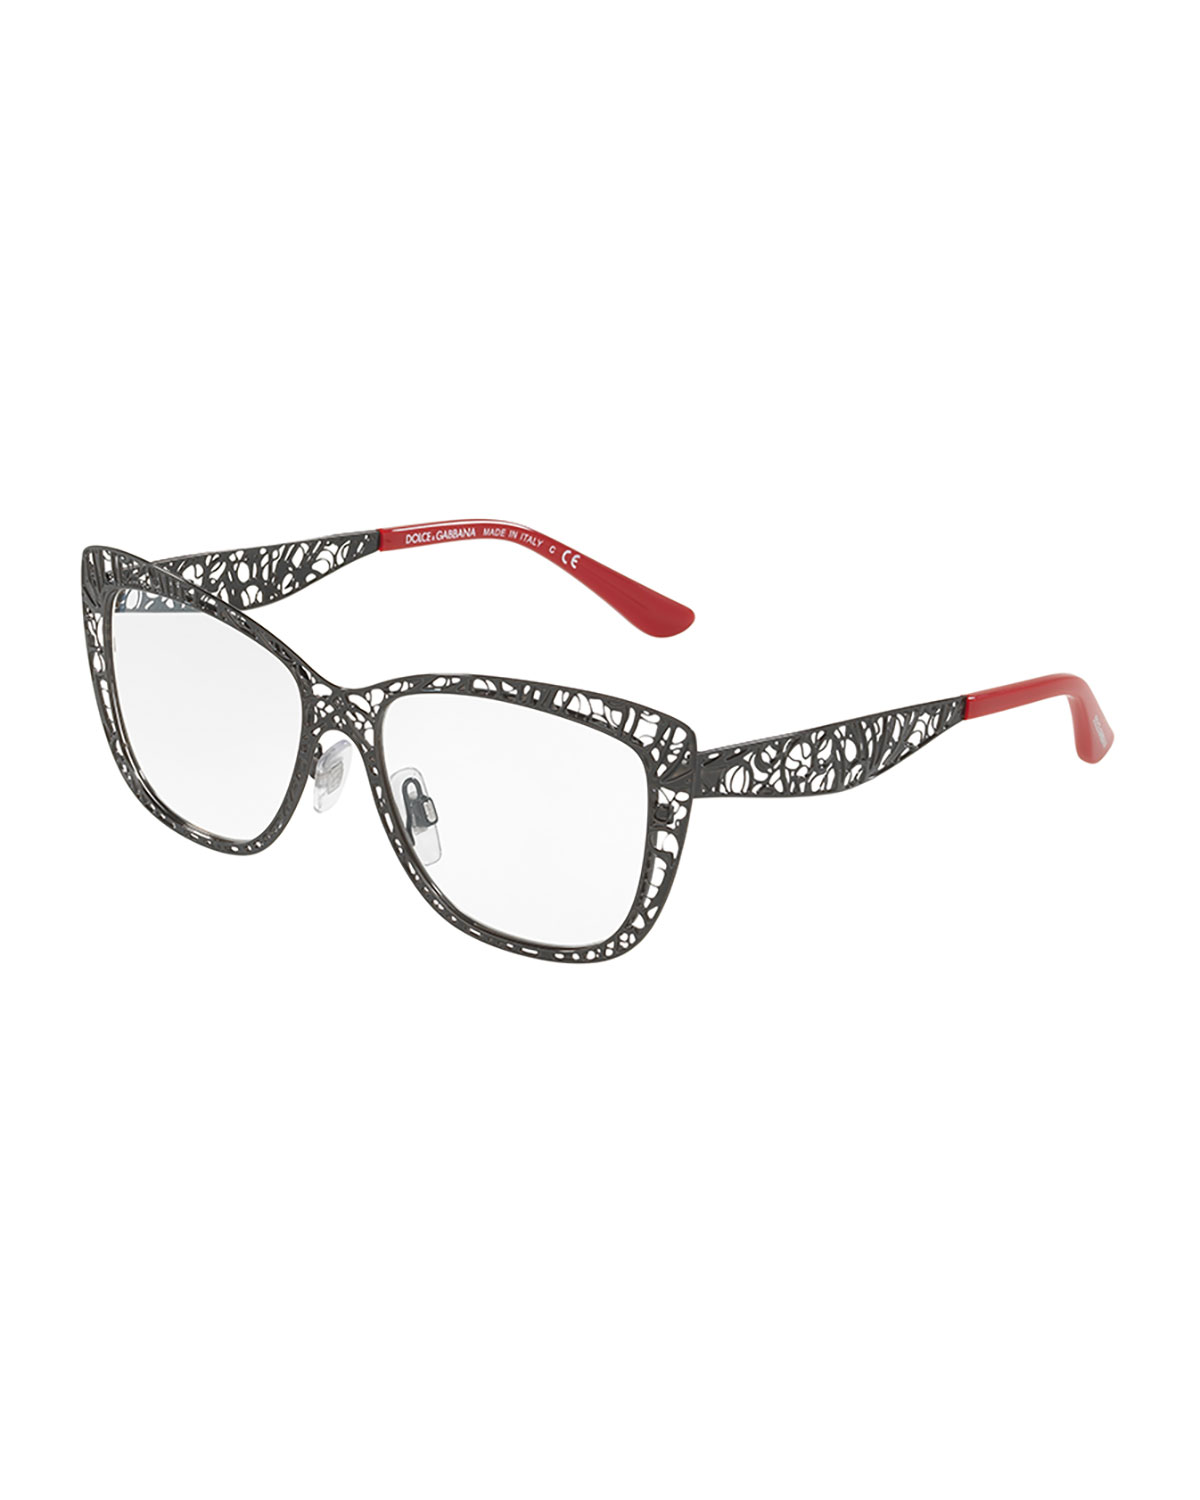 11333486f43 Dolce   Gabbana Flowers Lace Square Optical Frames